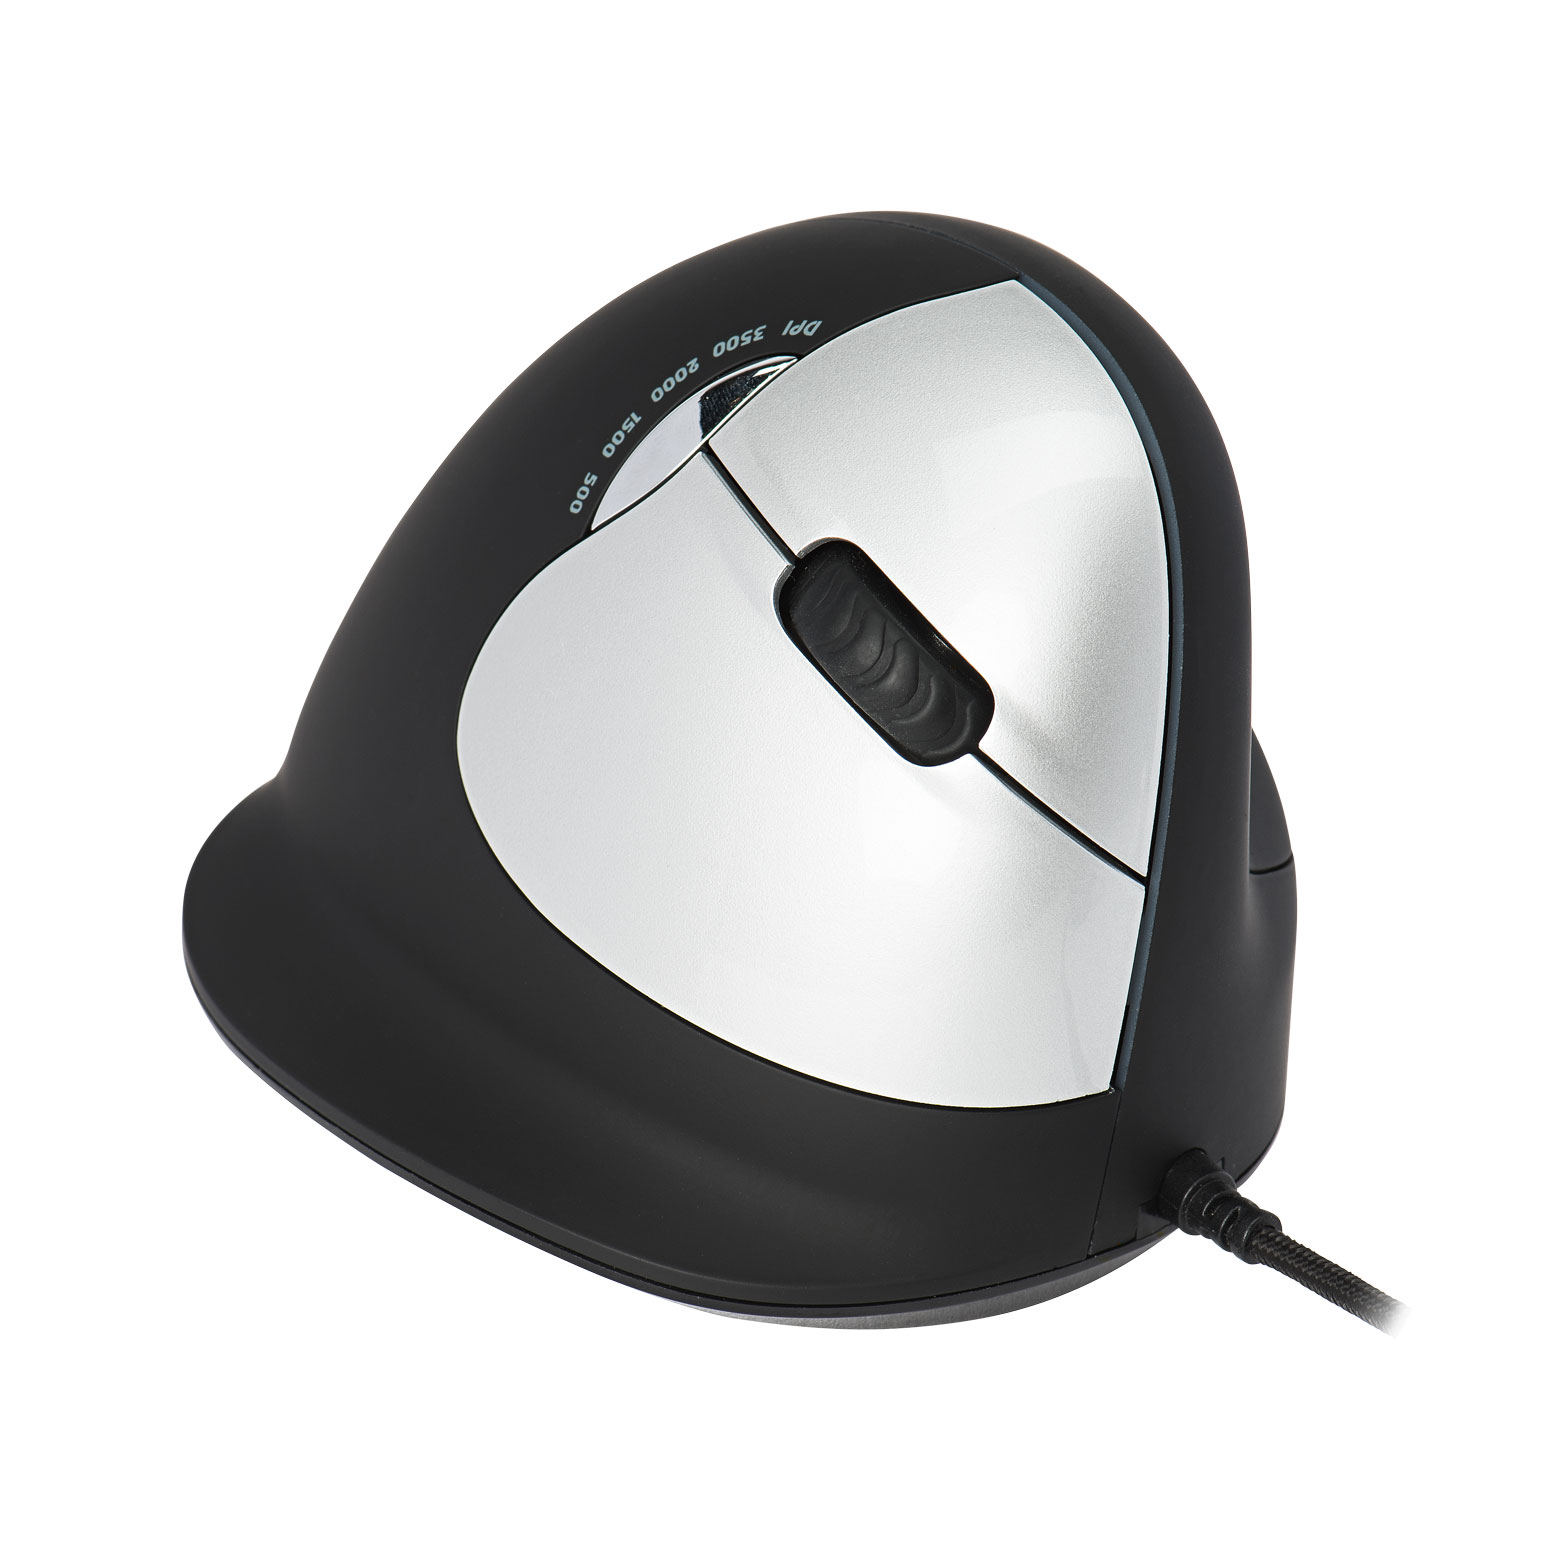 R-Go HE Break Mouse, Ergonomic mouse, Anti-RSI software, Medium (Hand Size 165-185mm), Right Handed, Wired - 5